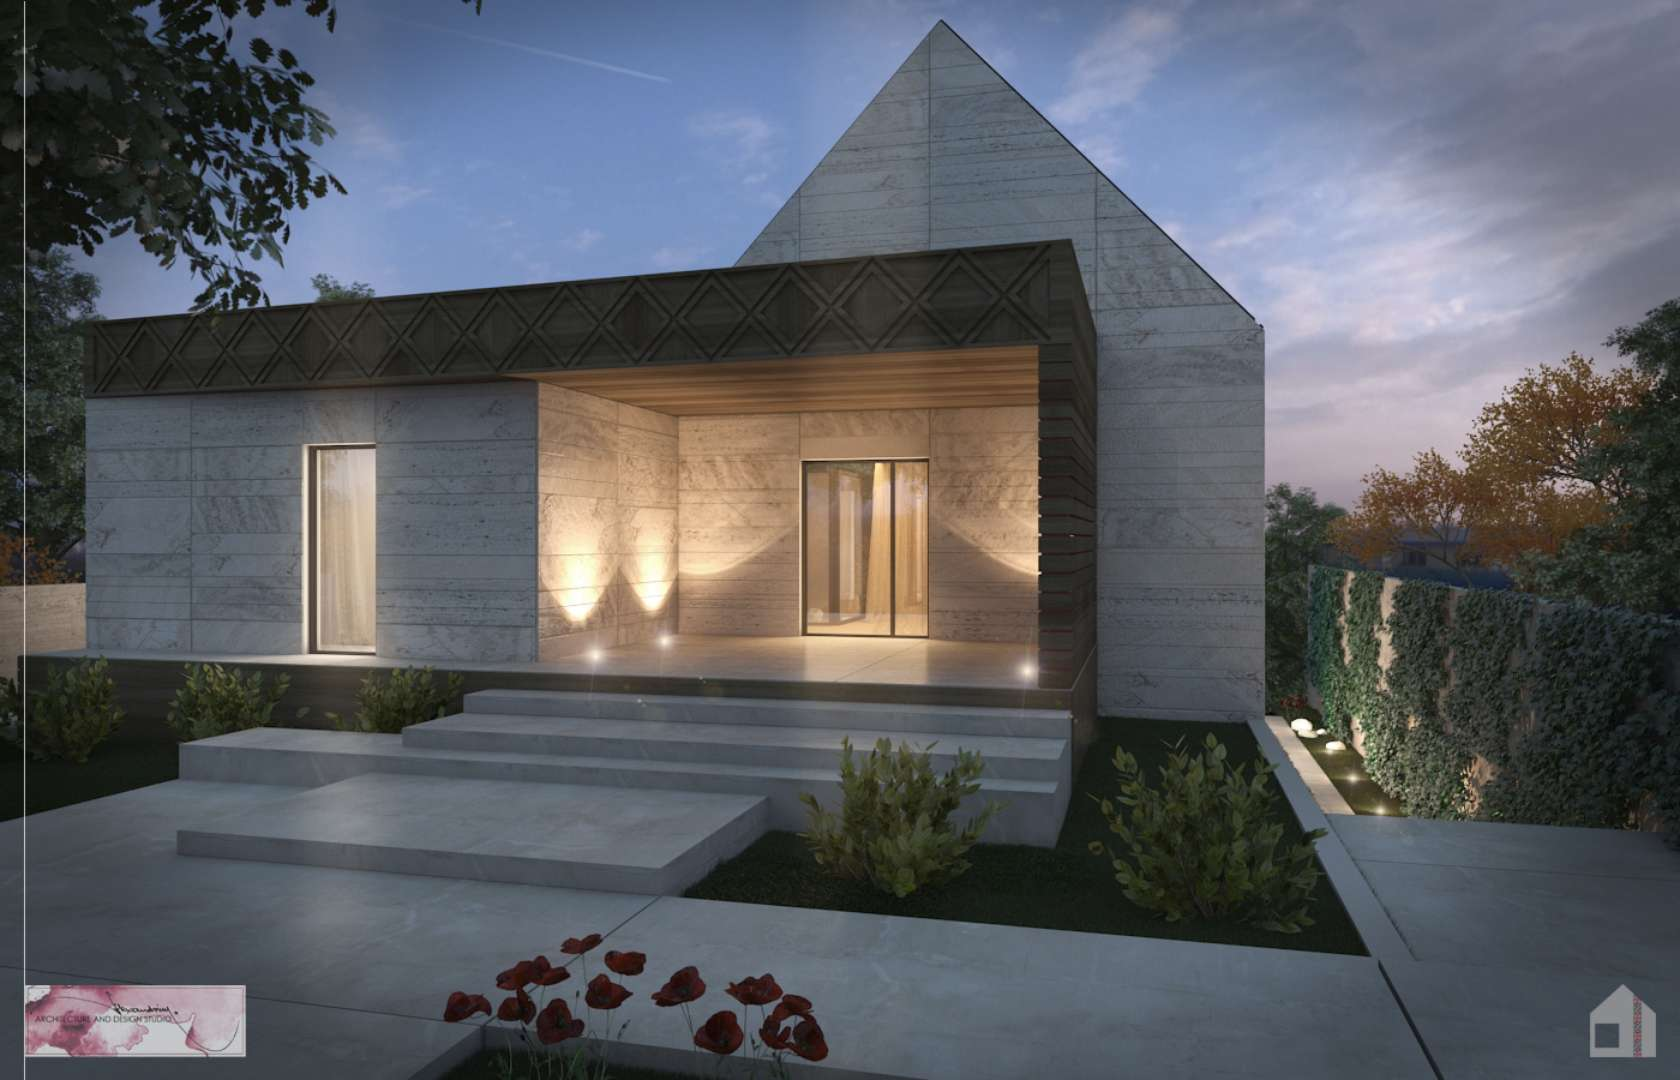 Ready and gable the triangular roof is back architizer